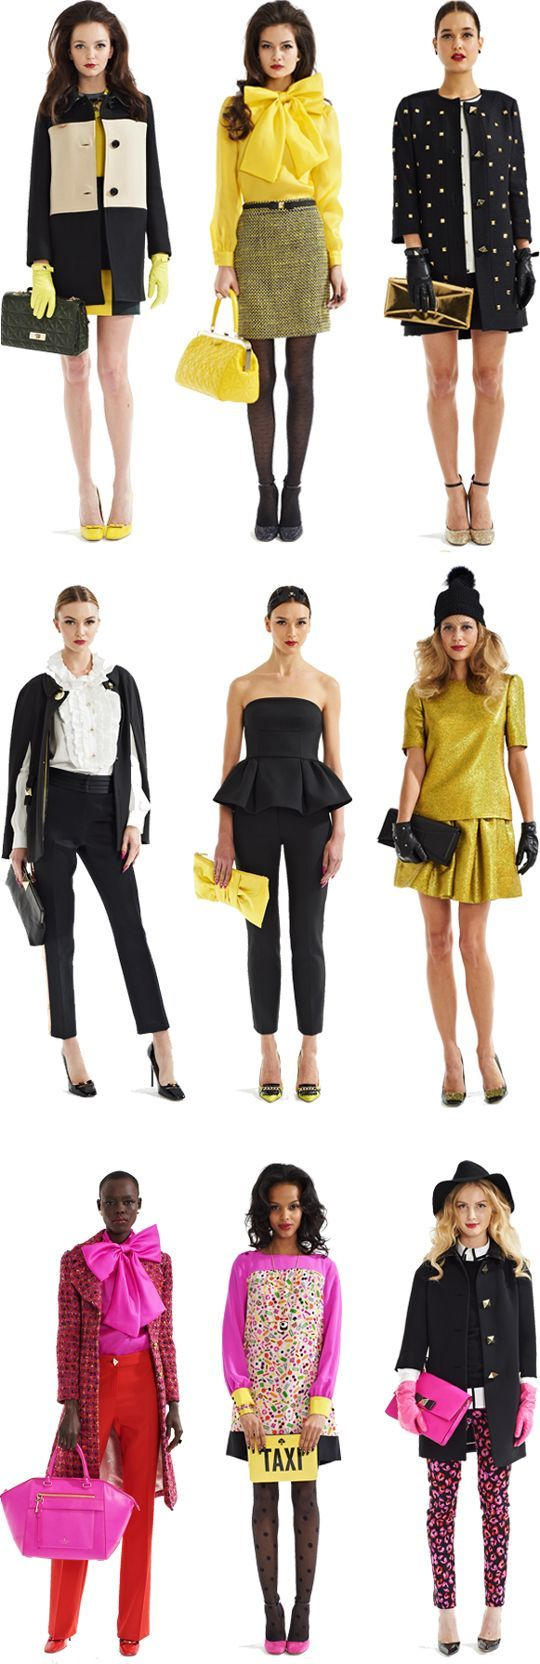 Kate Spade New York Fall 2013. So fab! @Micaela Burke I hope you were sitting down when you saw this! <3